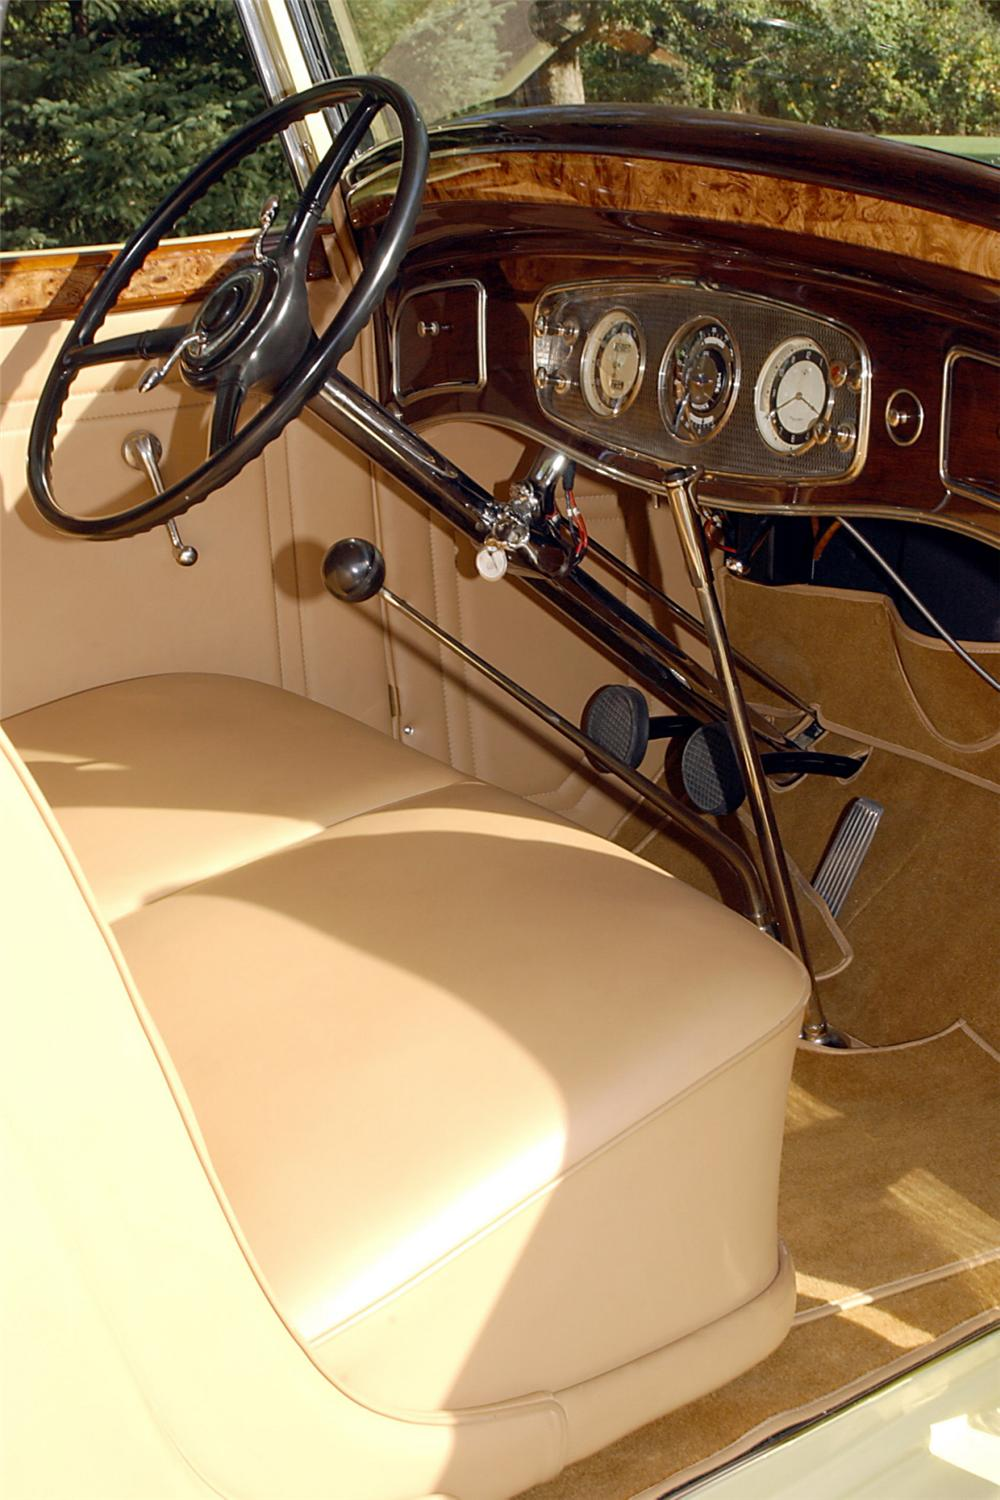 1934 LINCOLN 523 DIETRICH ROADSTER - Interior - 21778